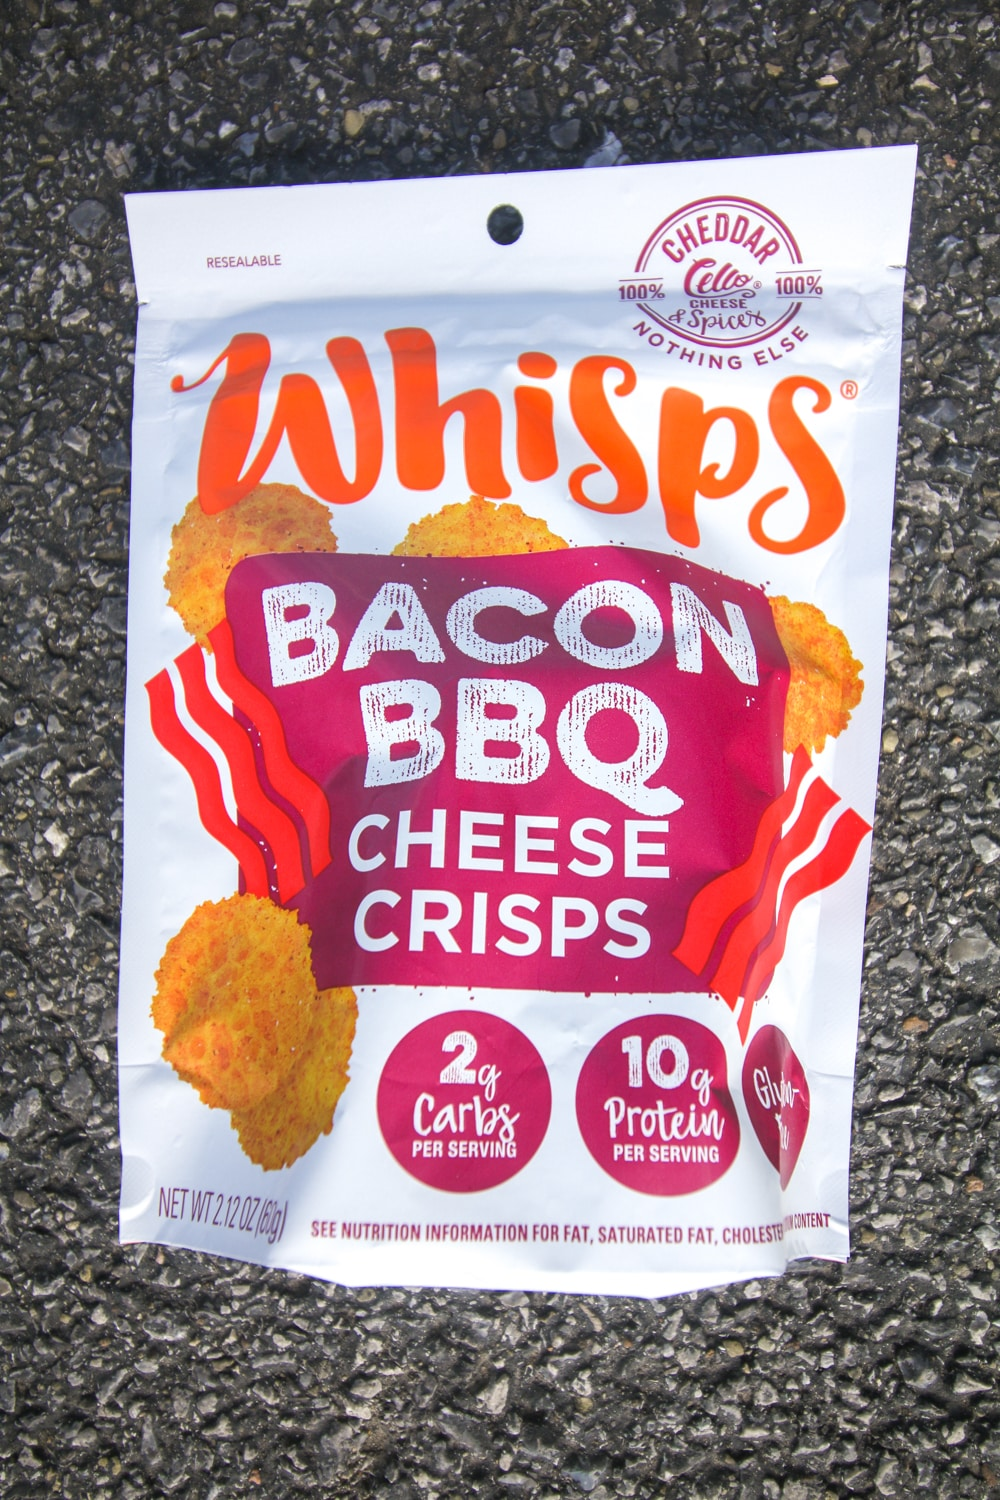 A bag of bacon cheese whisps.